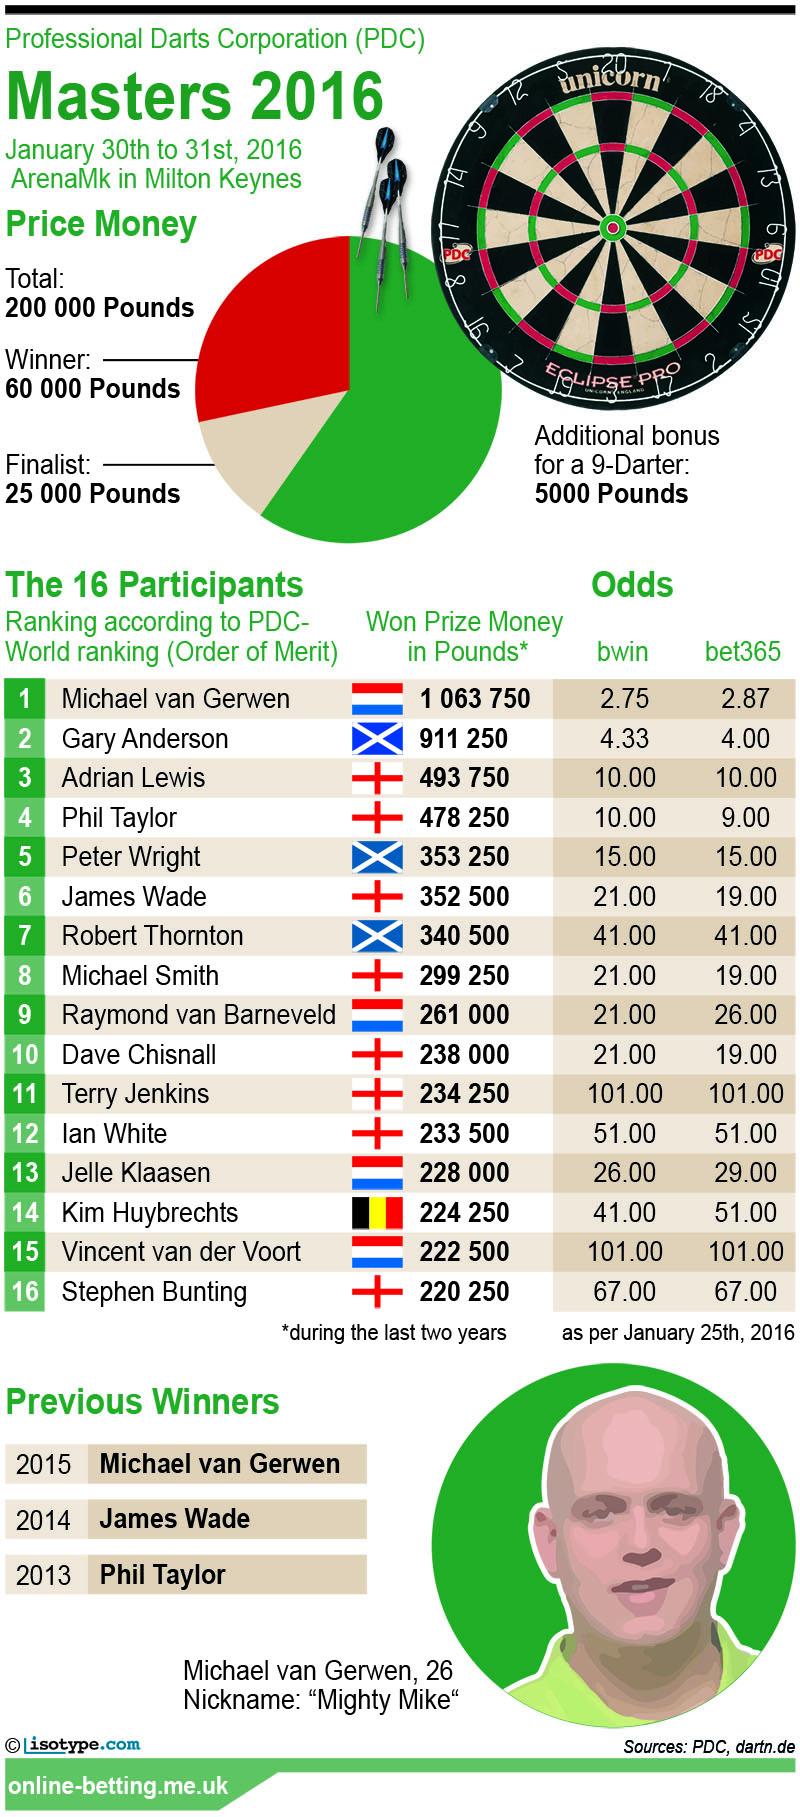 PDC Darts Masters 2016